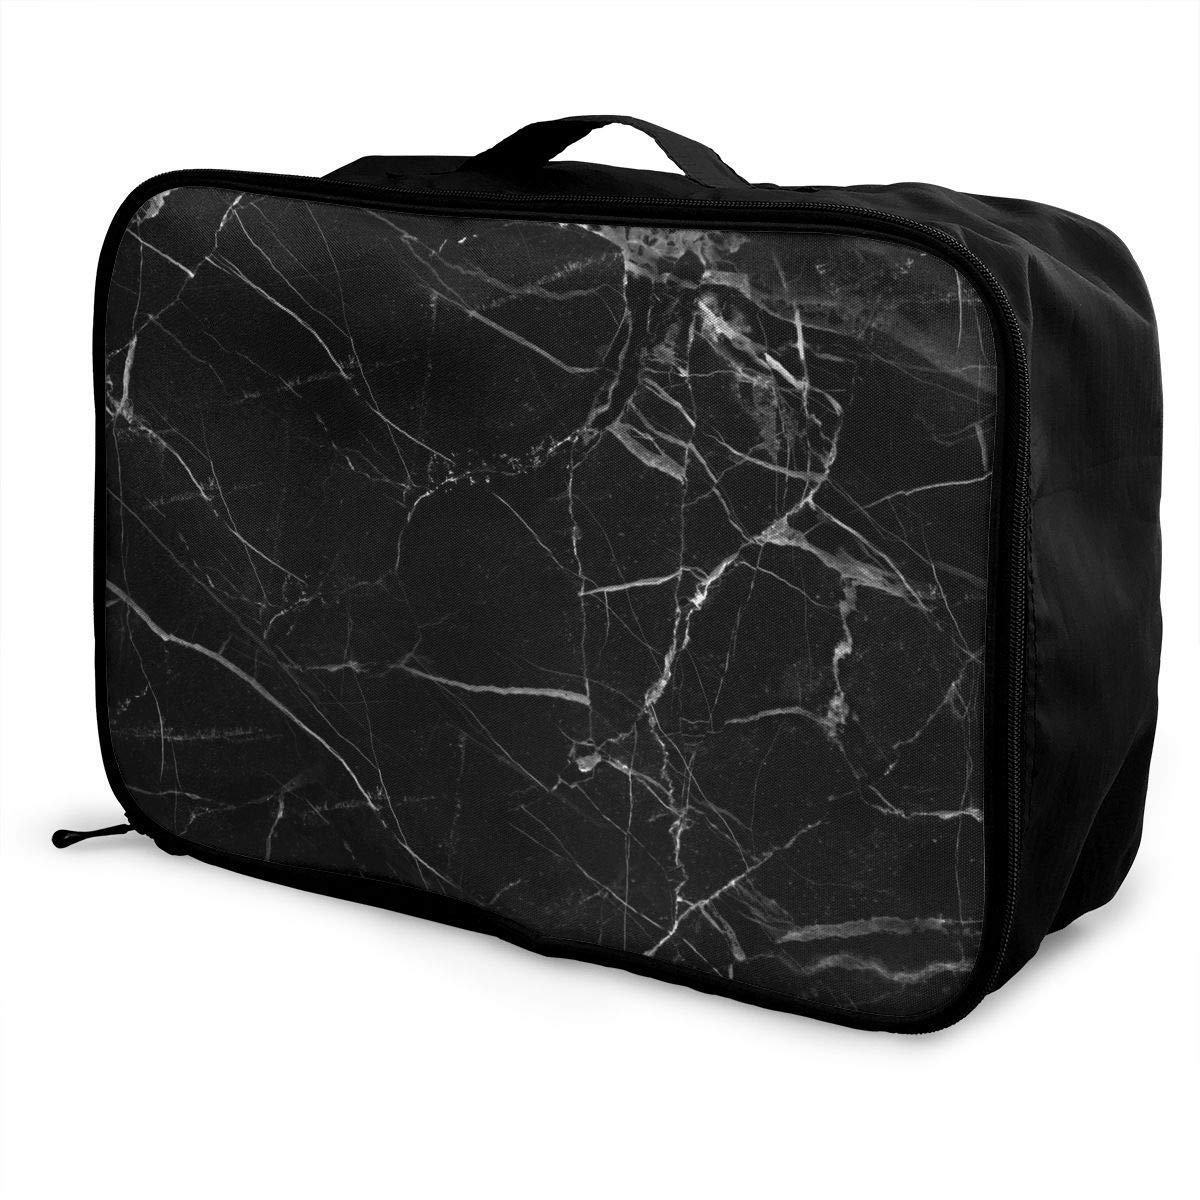 Portable Luggage Duffel Bag Black Marble Travel Bags Carry-on In Trolley Handle